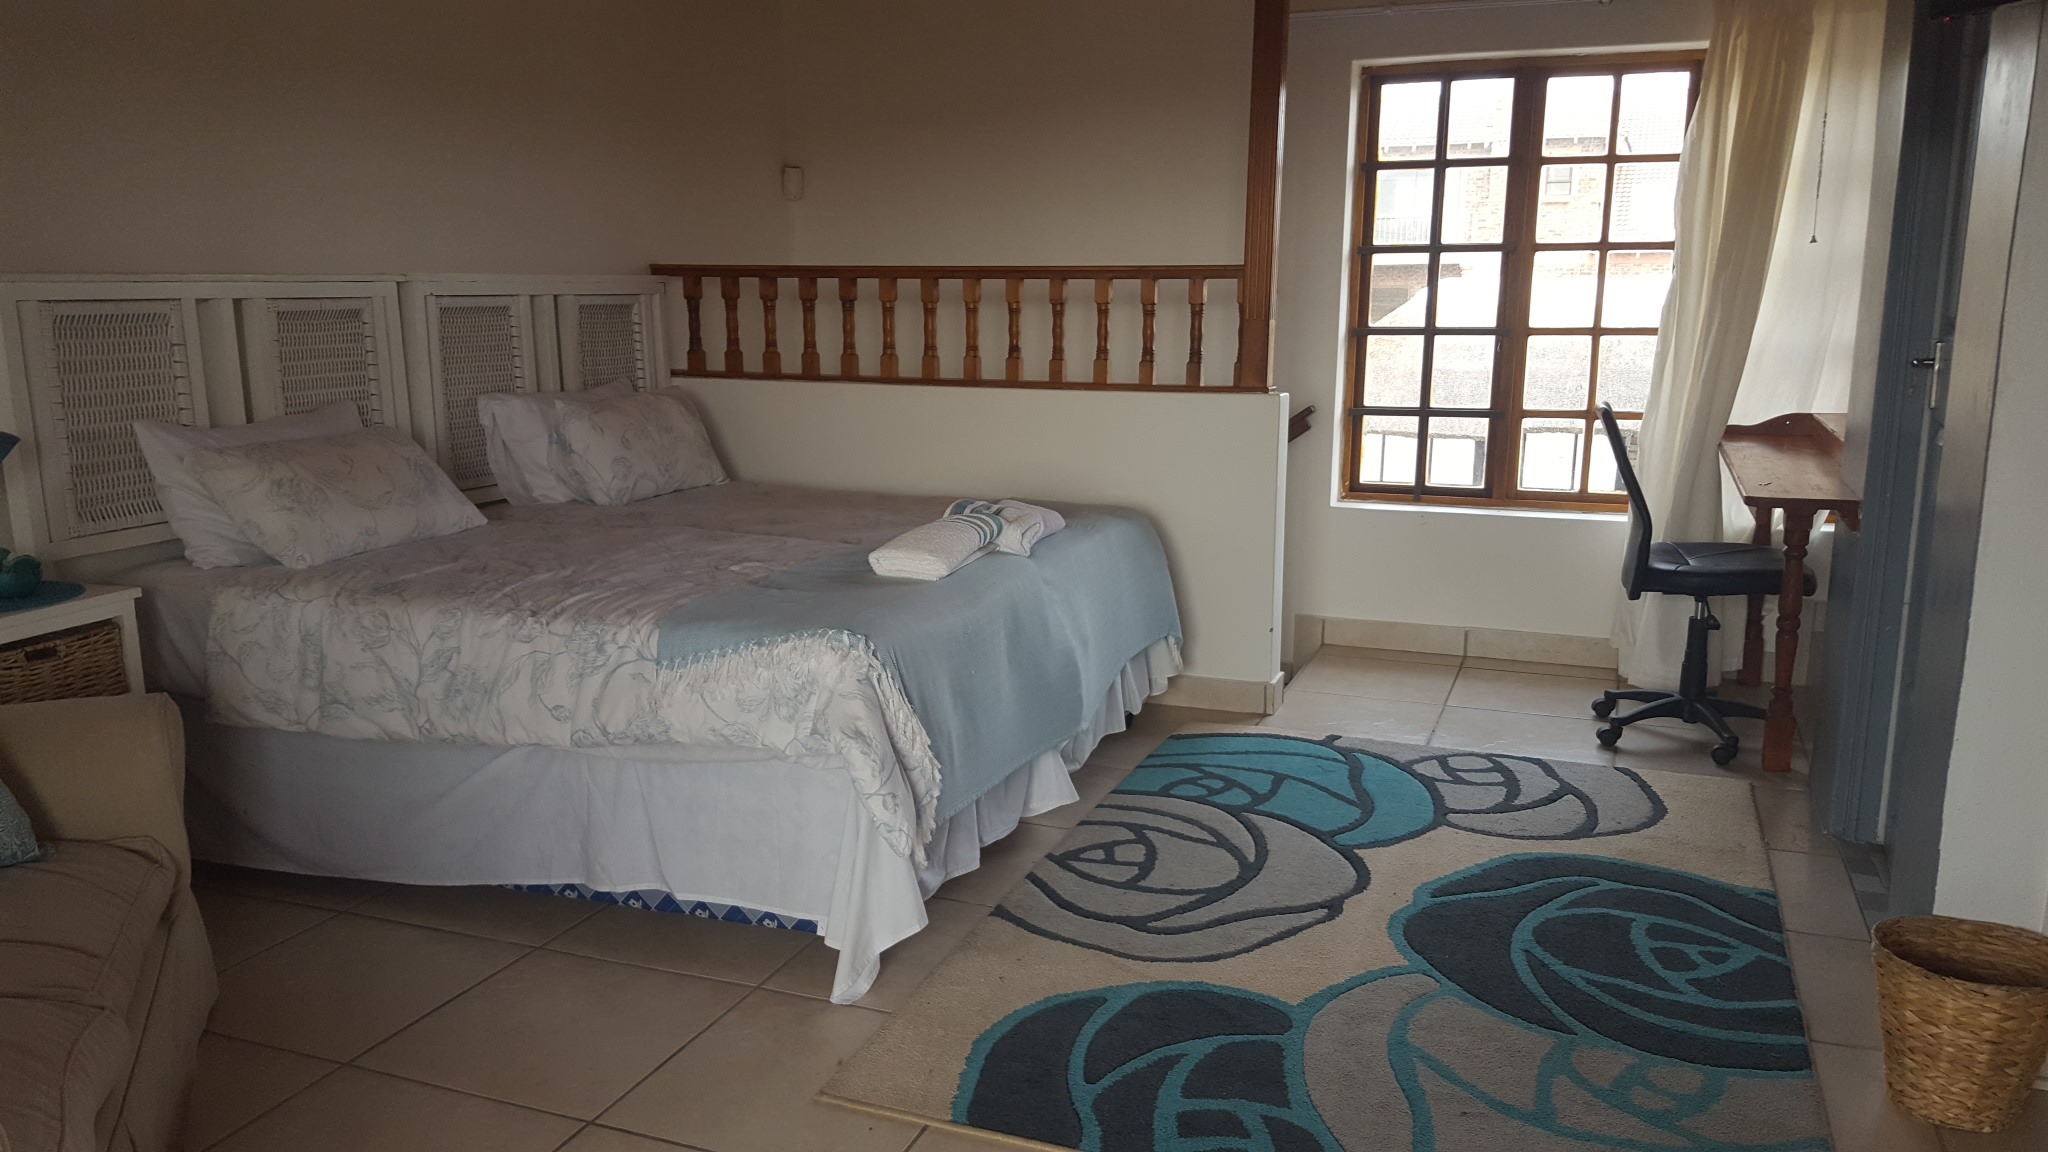 5 Bedroom House for sale in Bluewater Bay ENT0067493 : photo#20